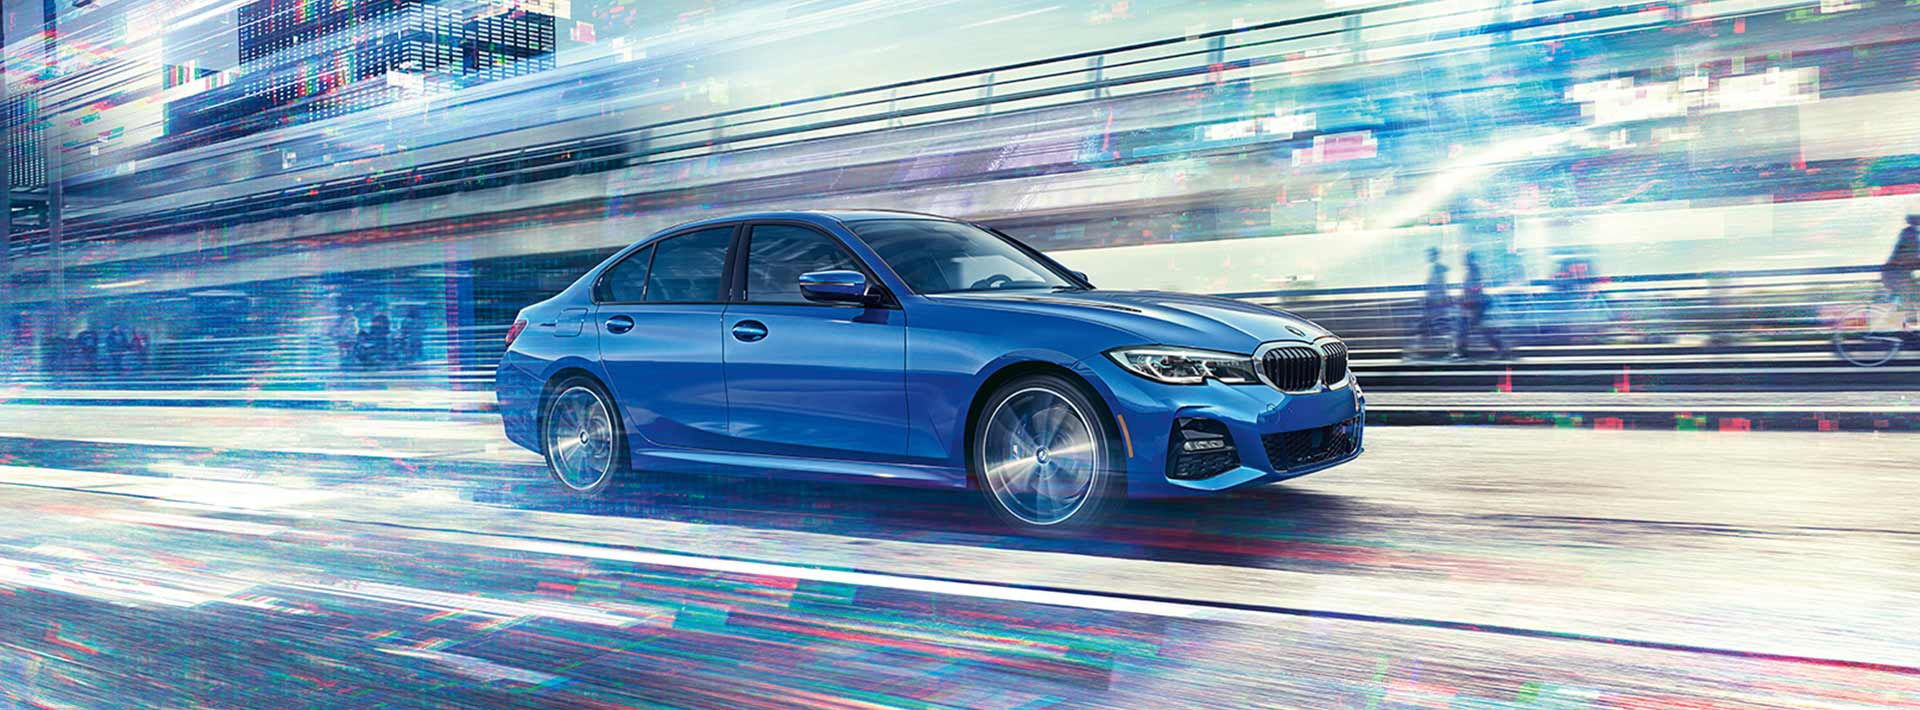 The 2019 BMW 3 Series is available at our BMW dealer